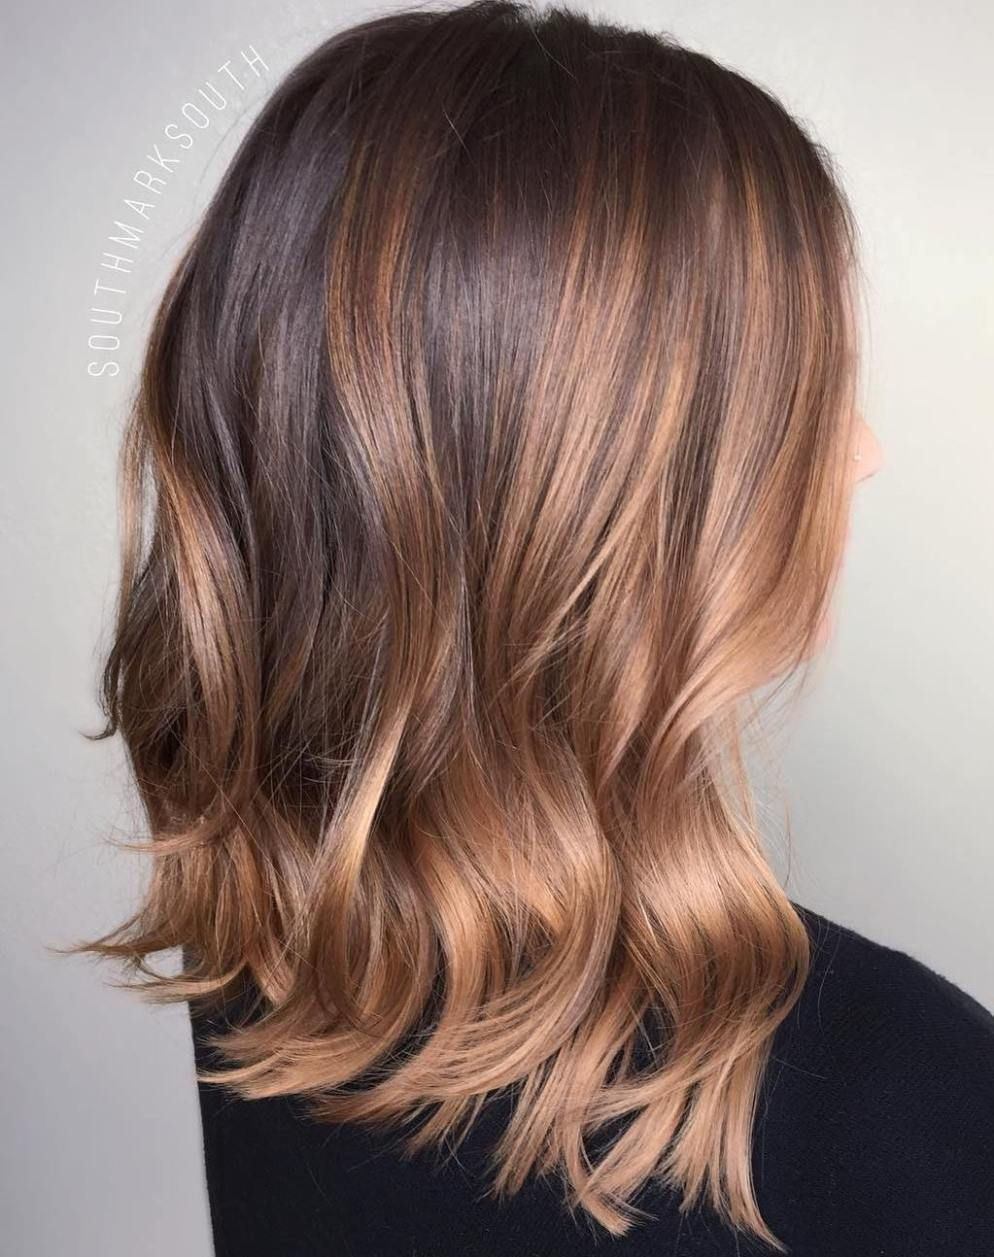 70 flattering balayage hair color ideas for 2019 my. Black Bedroom Furniture Sets. Home Design Ideas